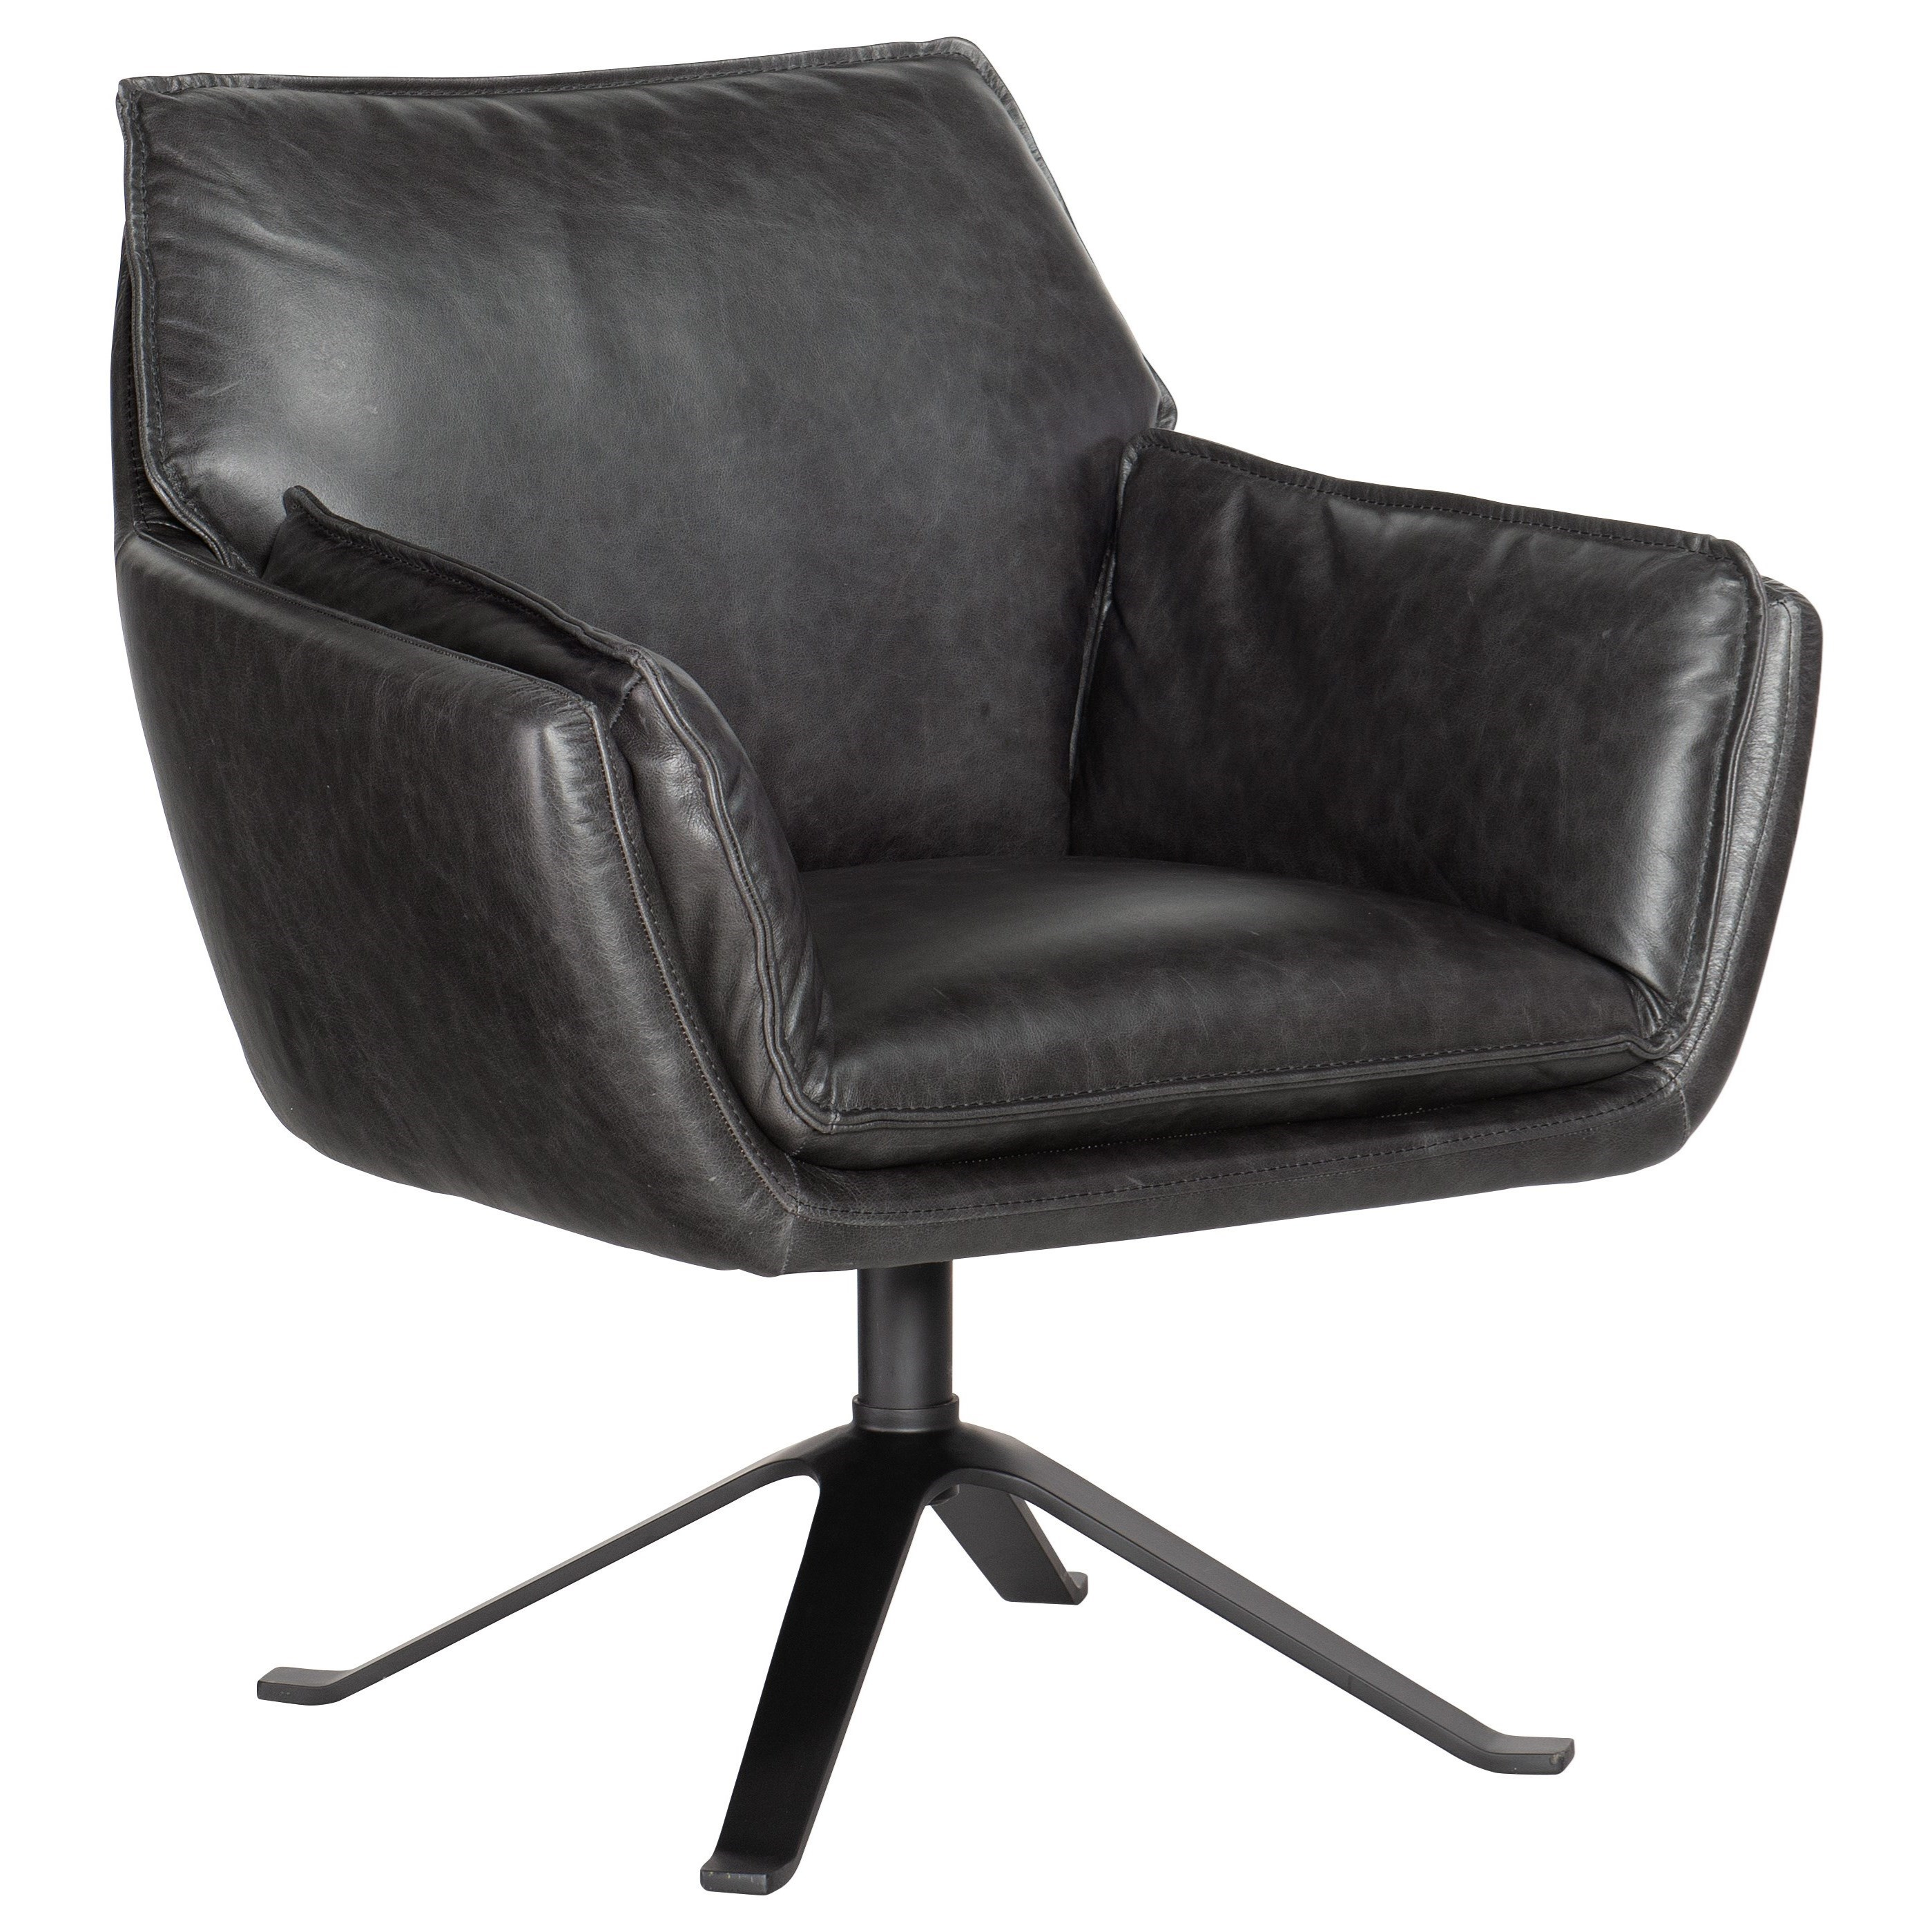 Limber Metal Base Swivel Club Chair by Hooker Furniture at Alison Craig Home Furnishings